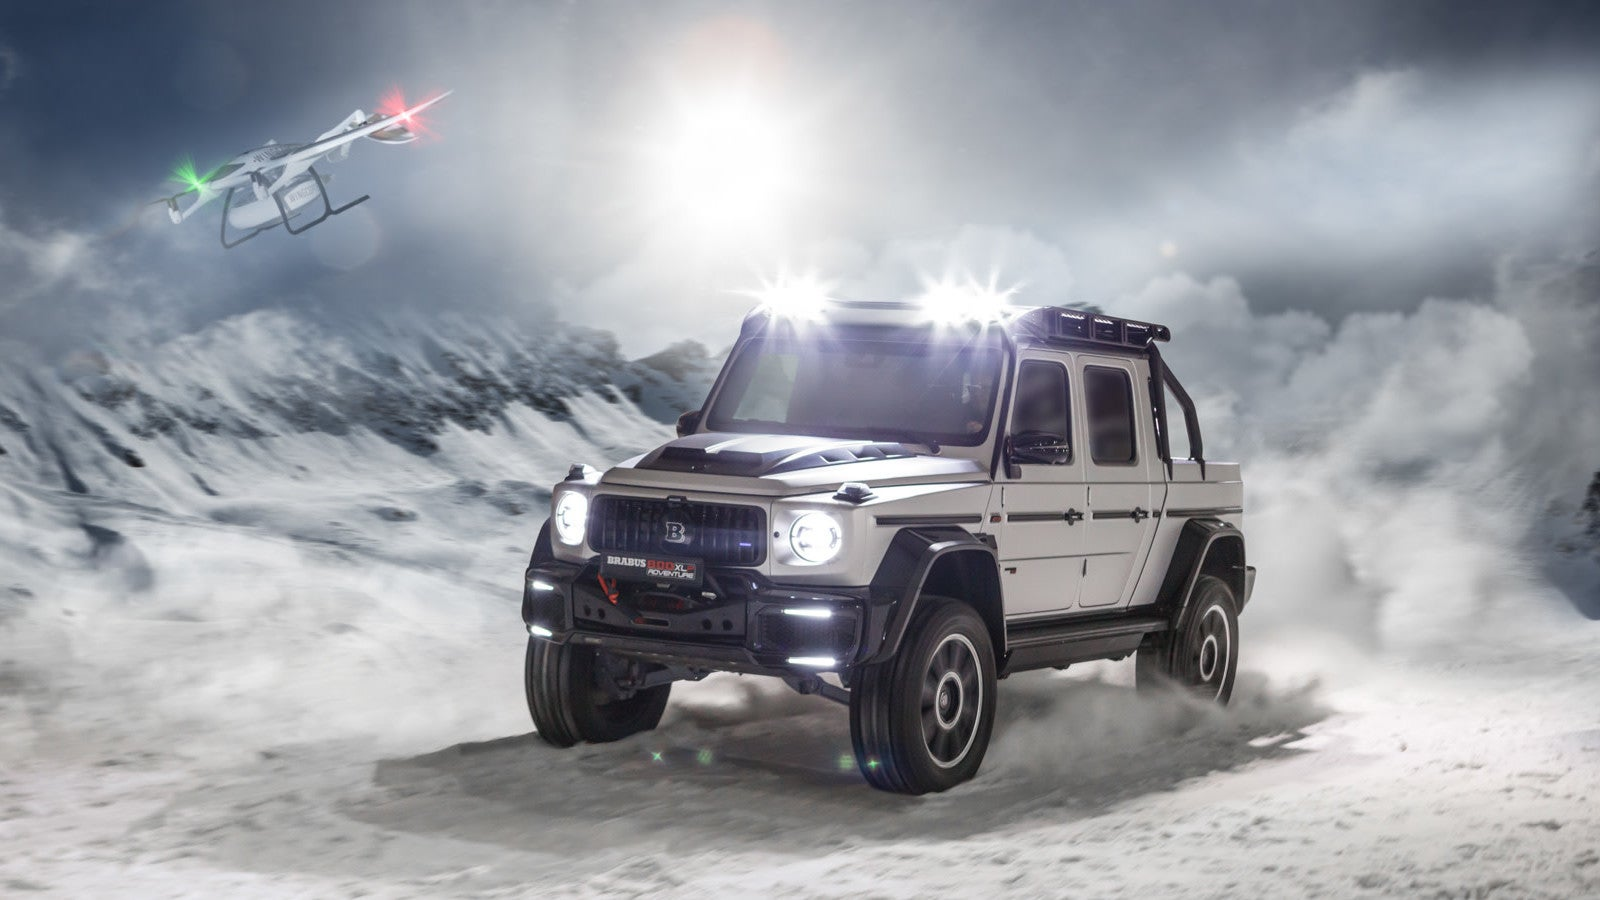 This Brabus-Tuned G-Wagen Is A 789-HP Pickup For Power-Mad Dictators